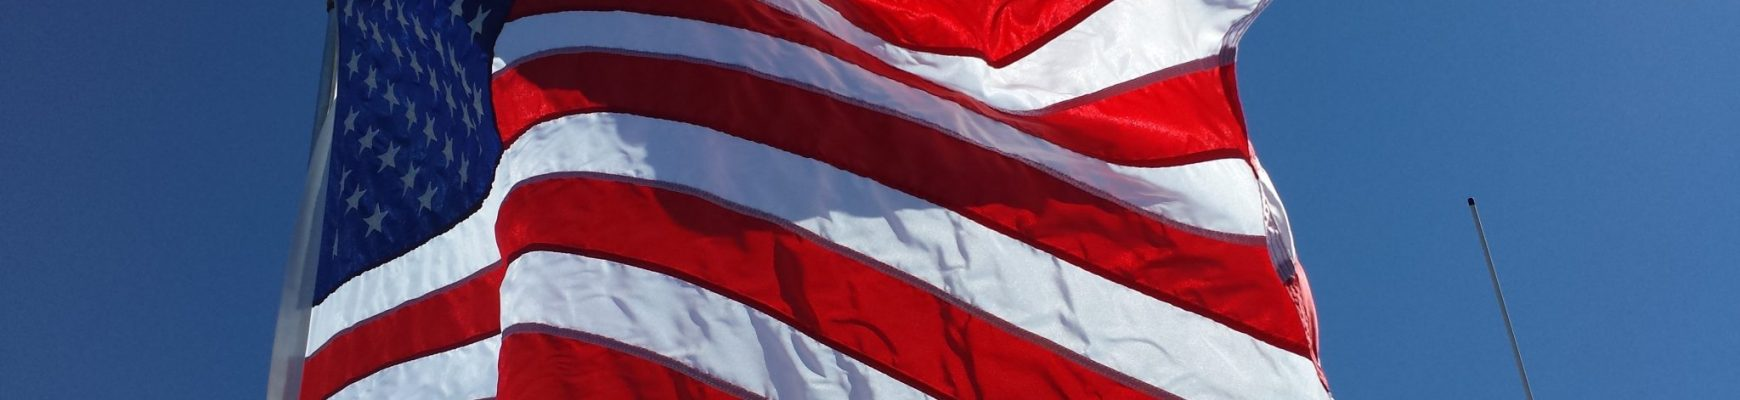 American Flag waving in the wind, with blue sky behind it.